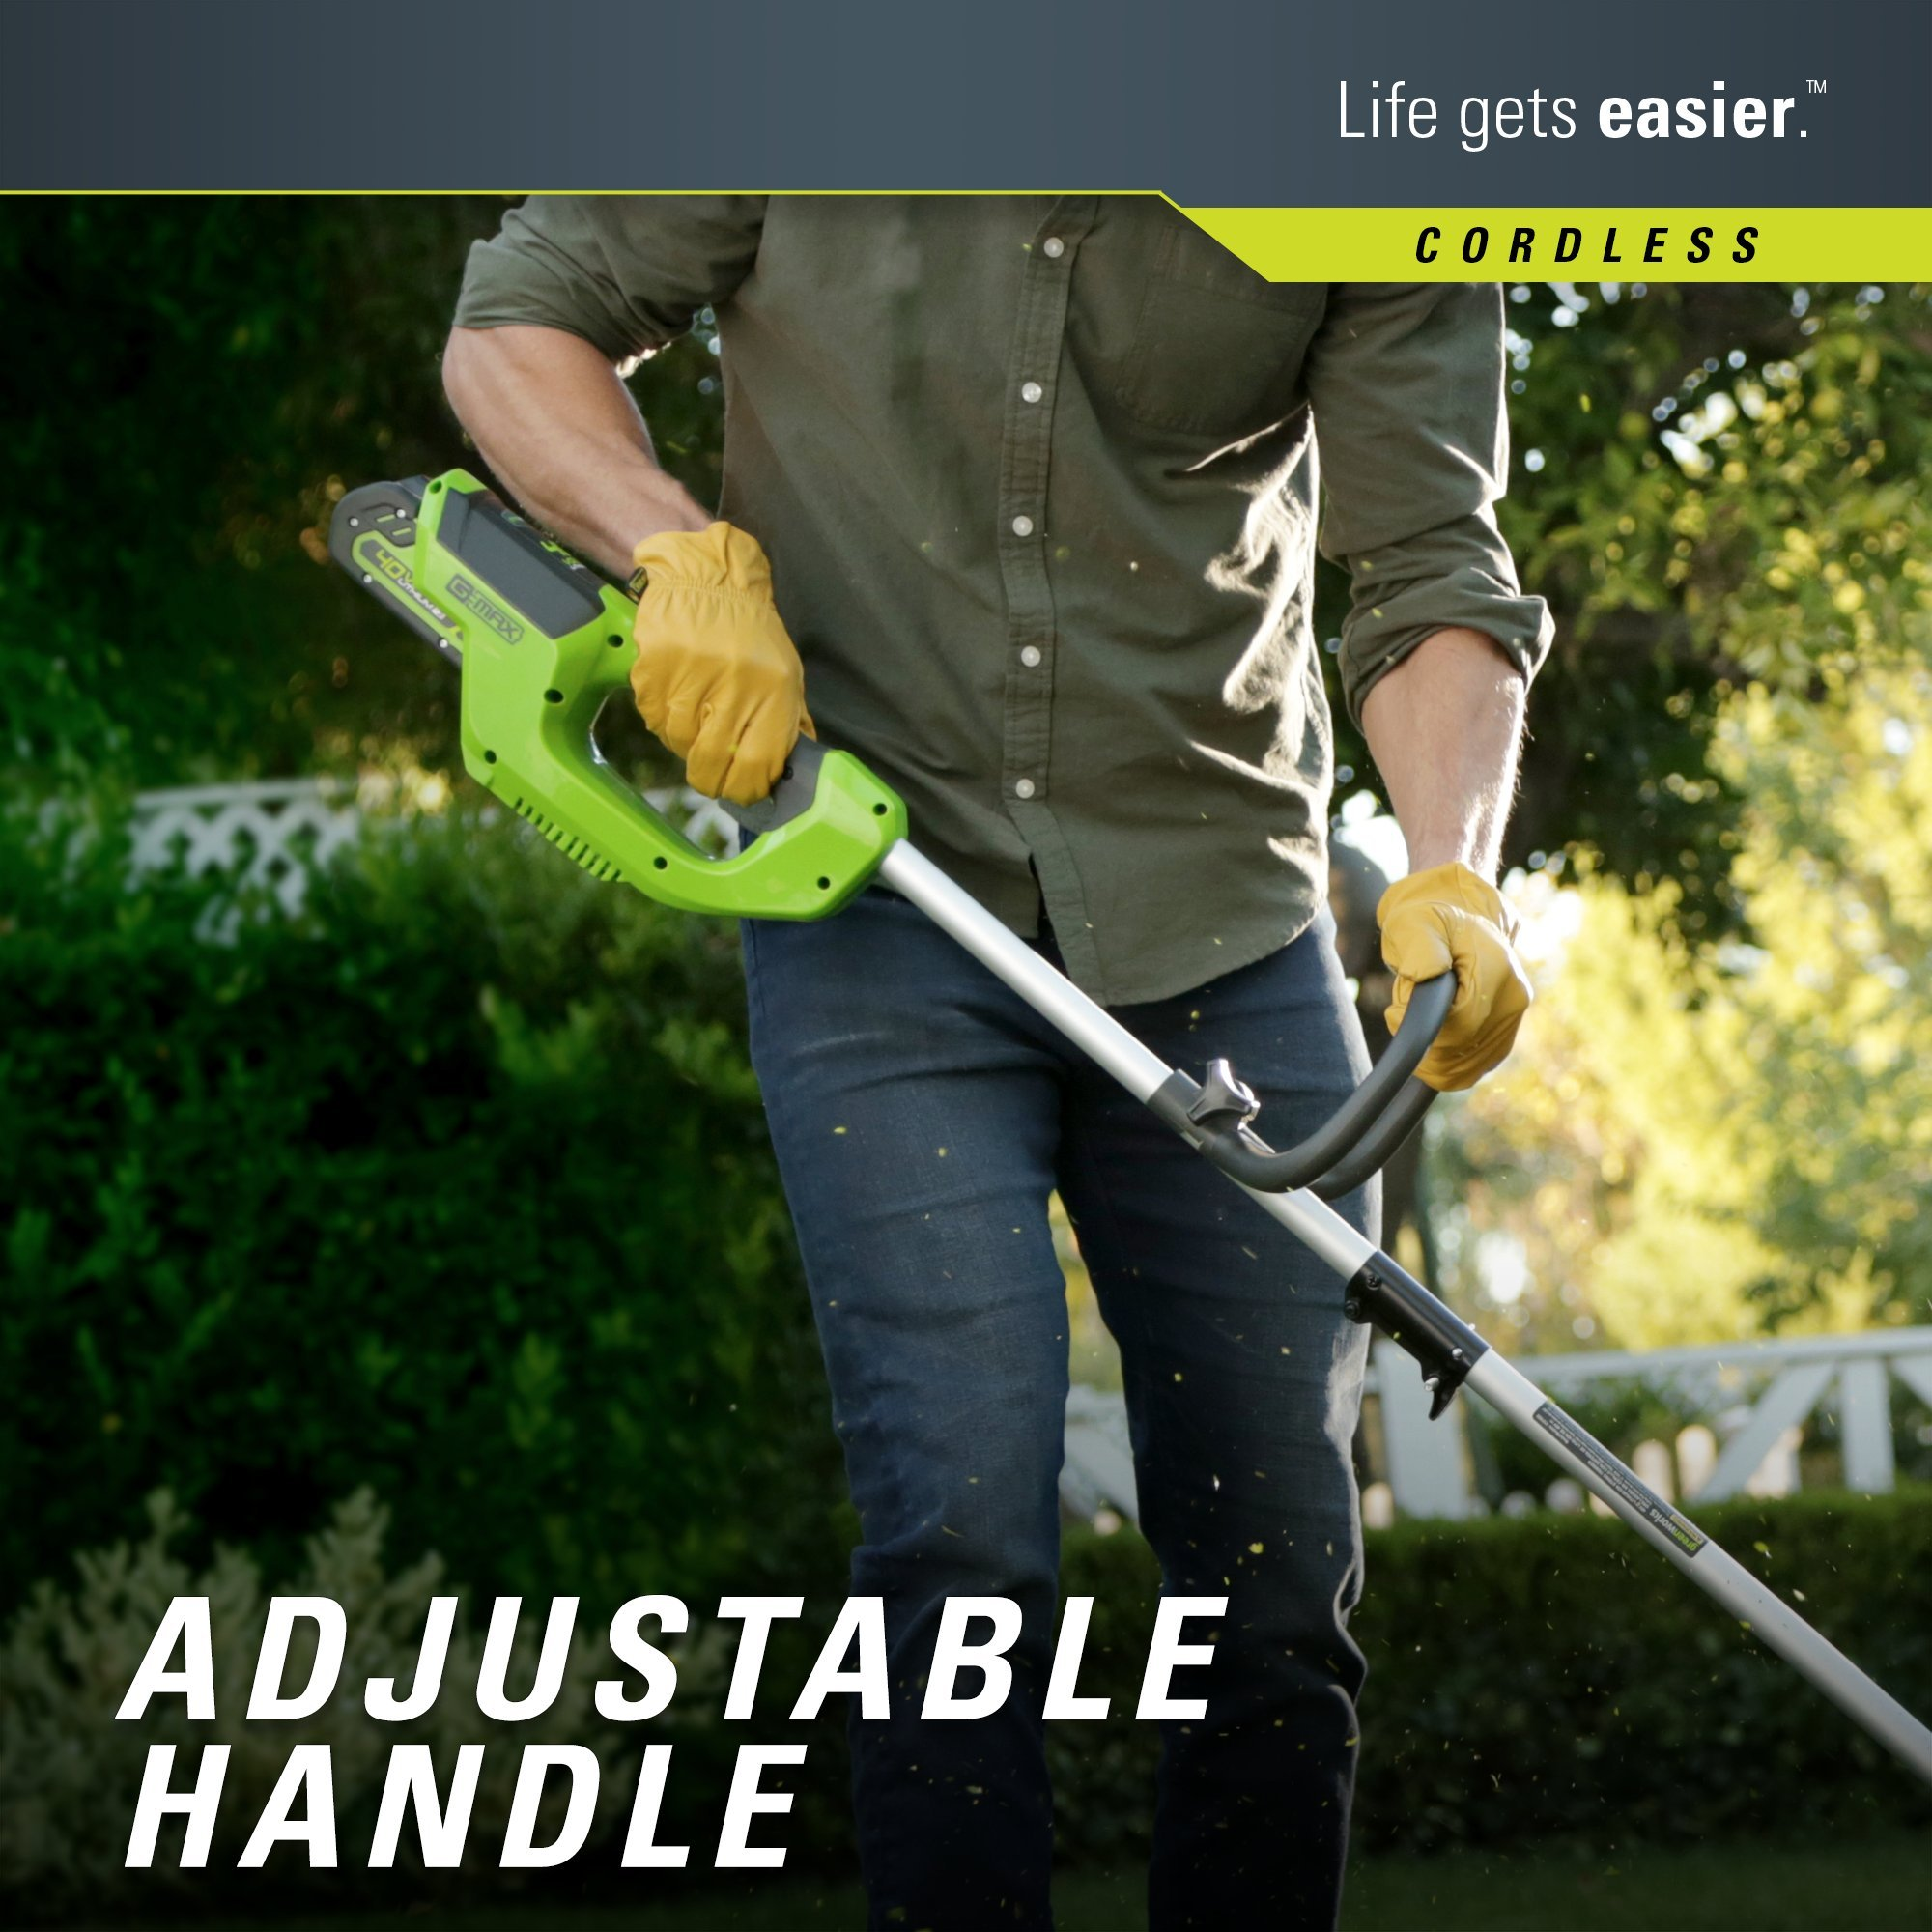 GreenWorks 2101602 G-MAX 40V 12-Inch Cordless String Trimmer, 2Ah Battery and Charger Included by Greenworks (Image #3)